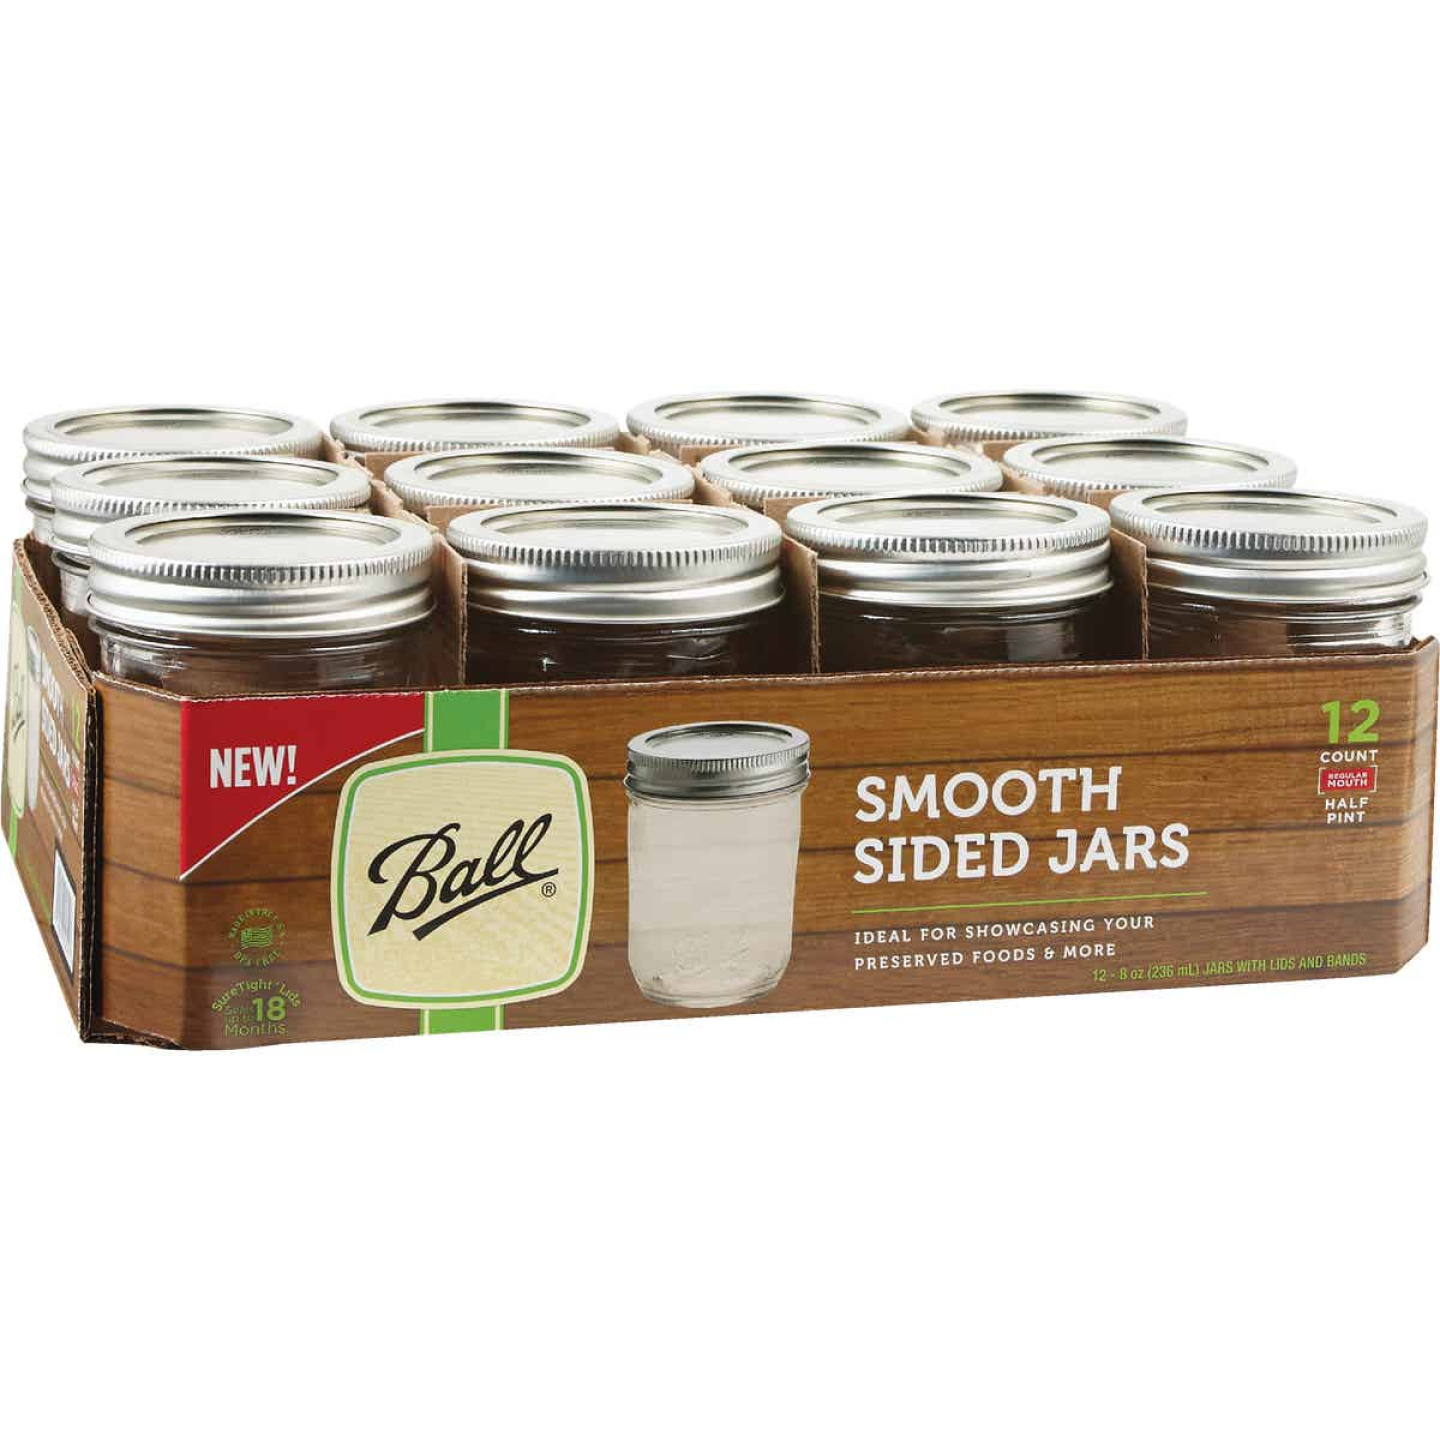 Ball 1/2 Pint Regular Mouth Smooth-Sided Silver Lid Canning Jar (12-Count) Image 2